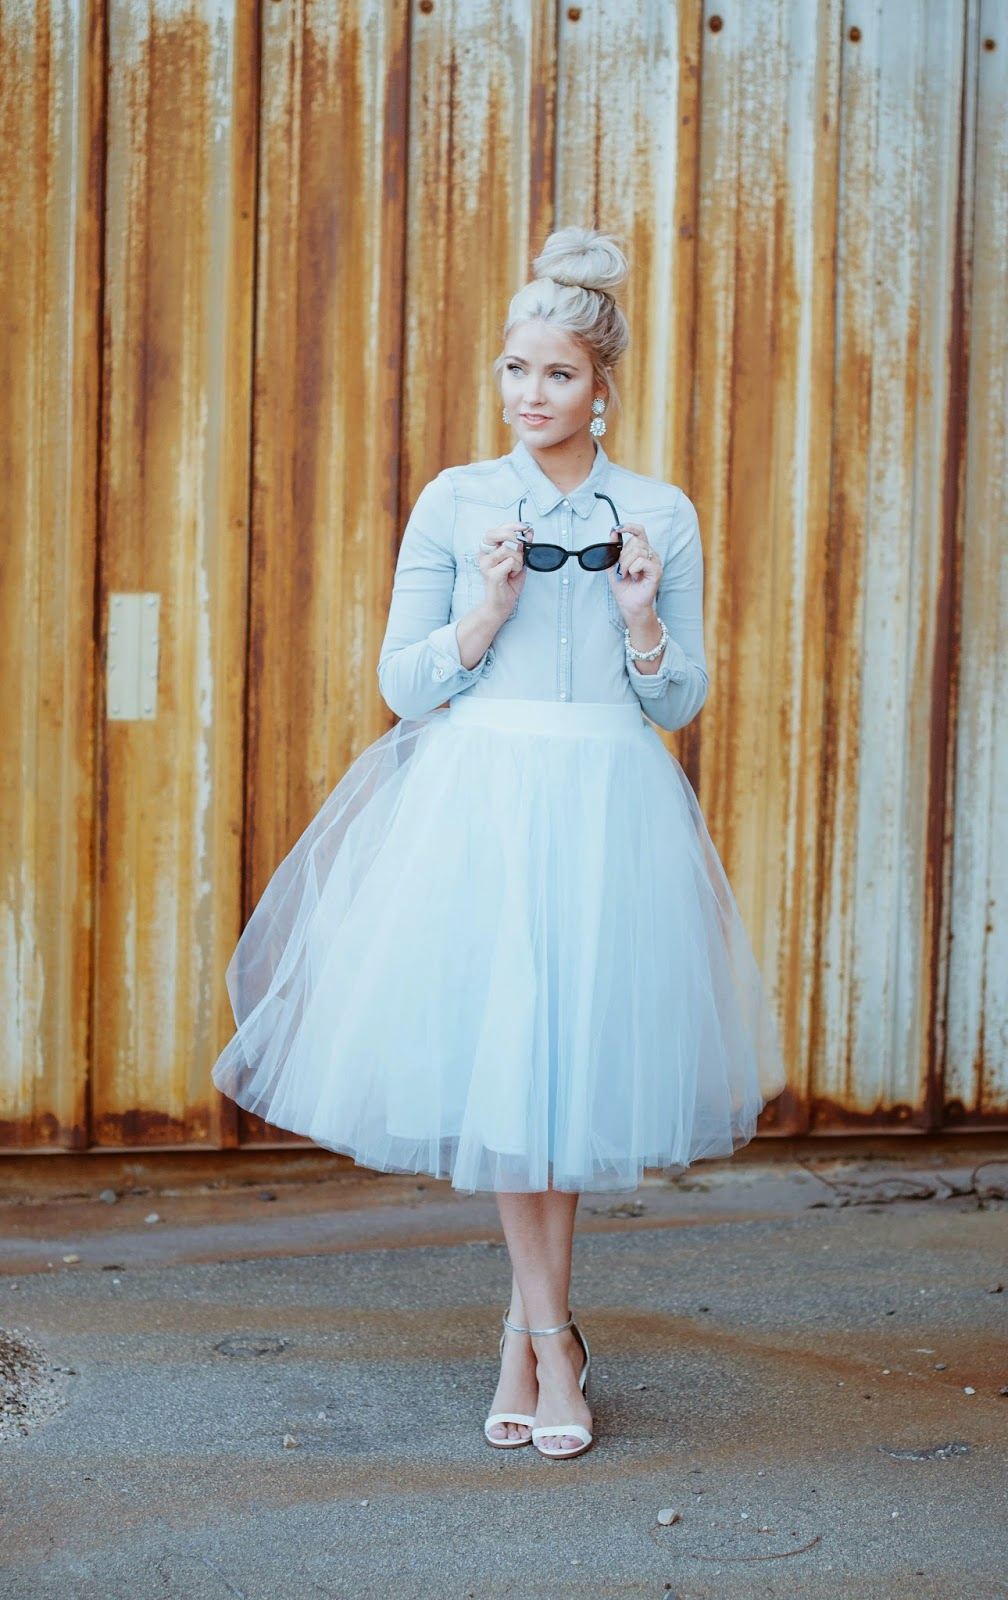 Wearing a Tulle Skirt